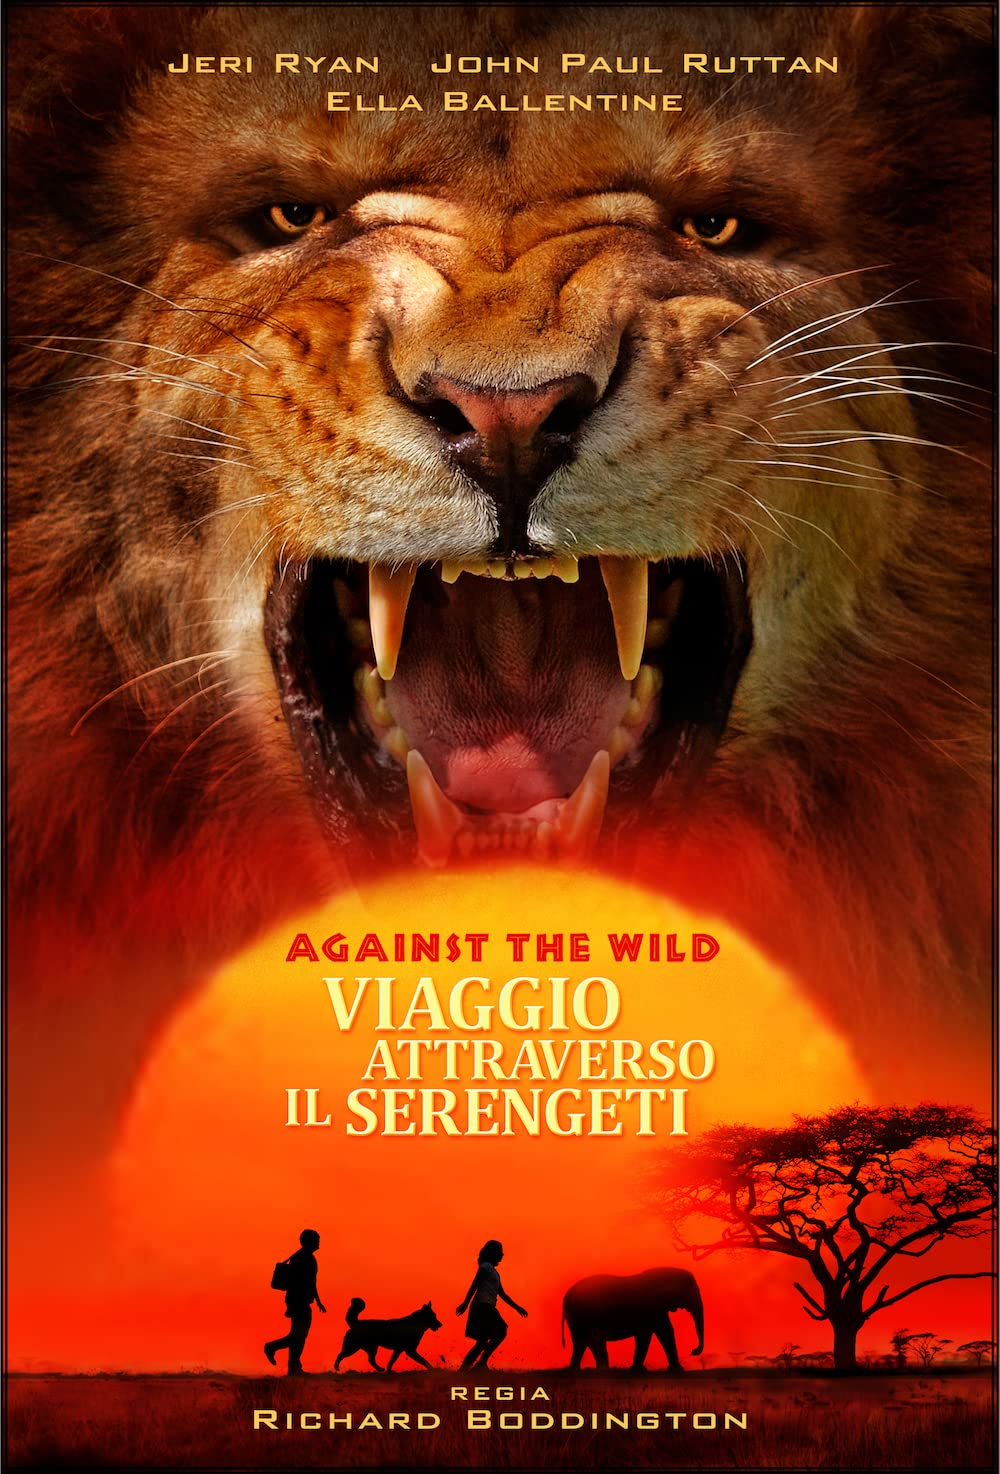 Against the Wild 2: Survive the Serengeti (2016) Hindi Dubbed